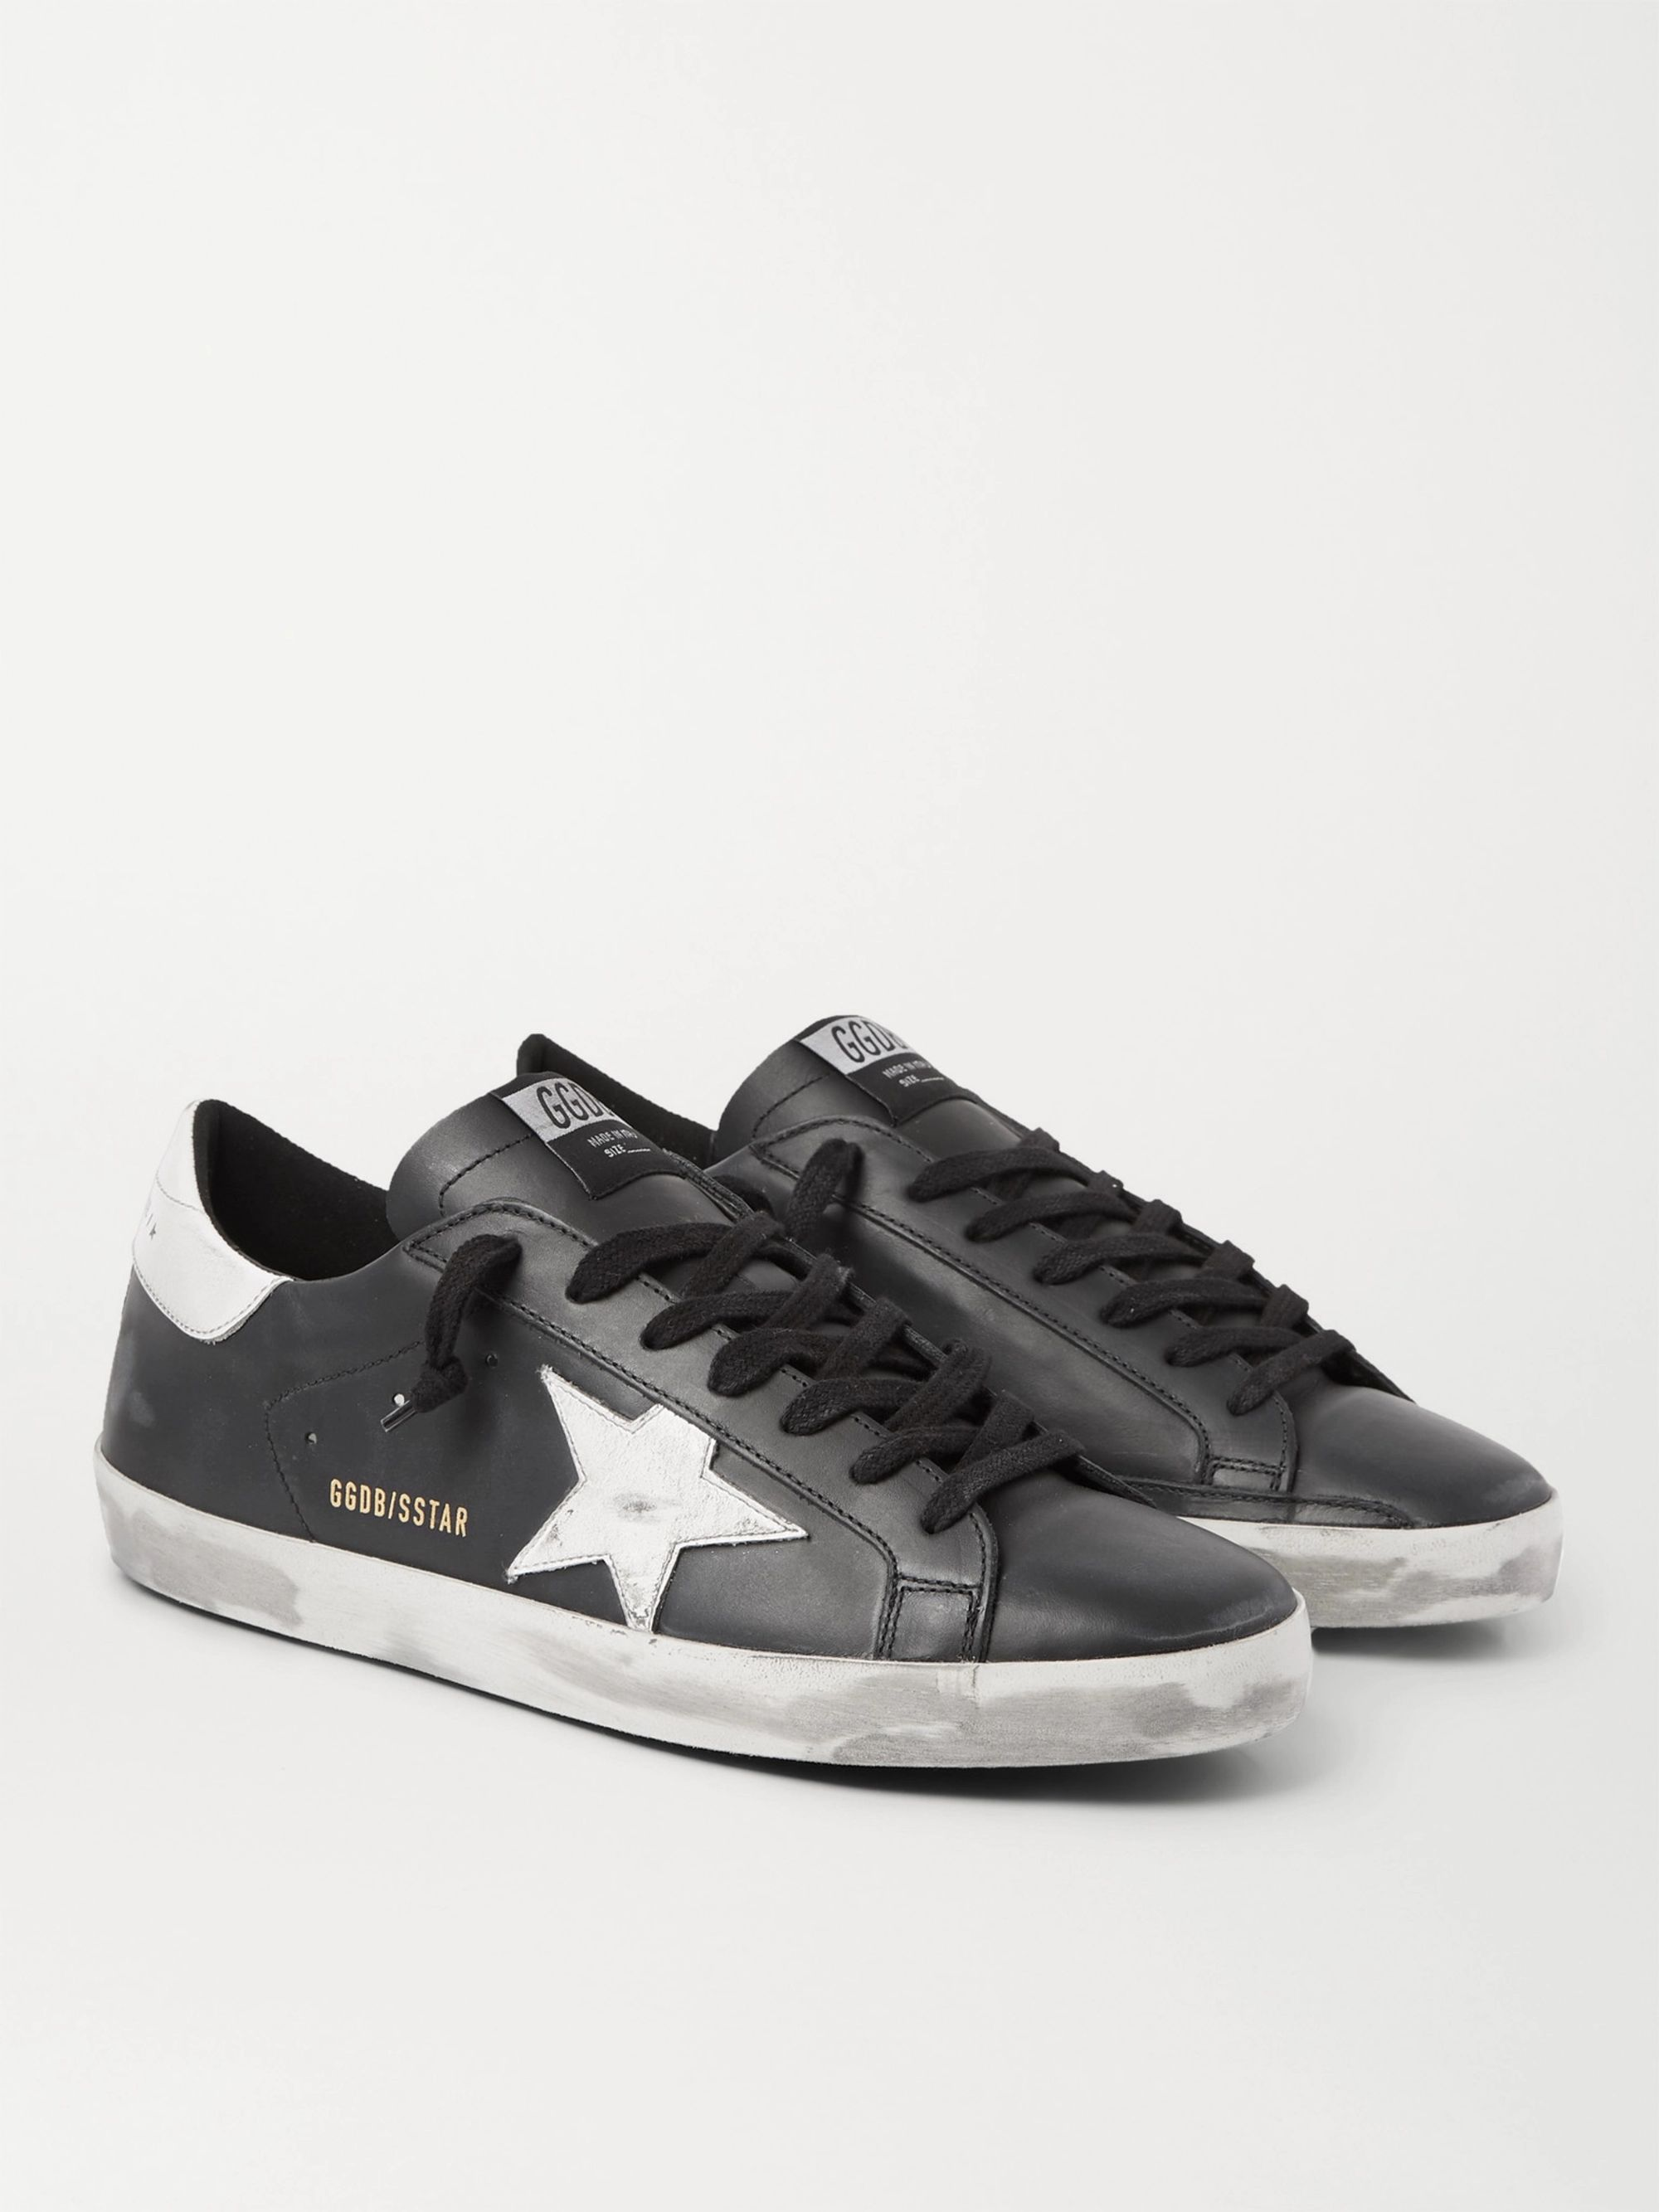 골든구스 Golden Goose Superstar Distressed Leather Sneakers,Black